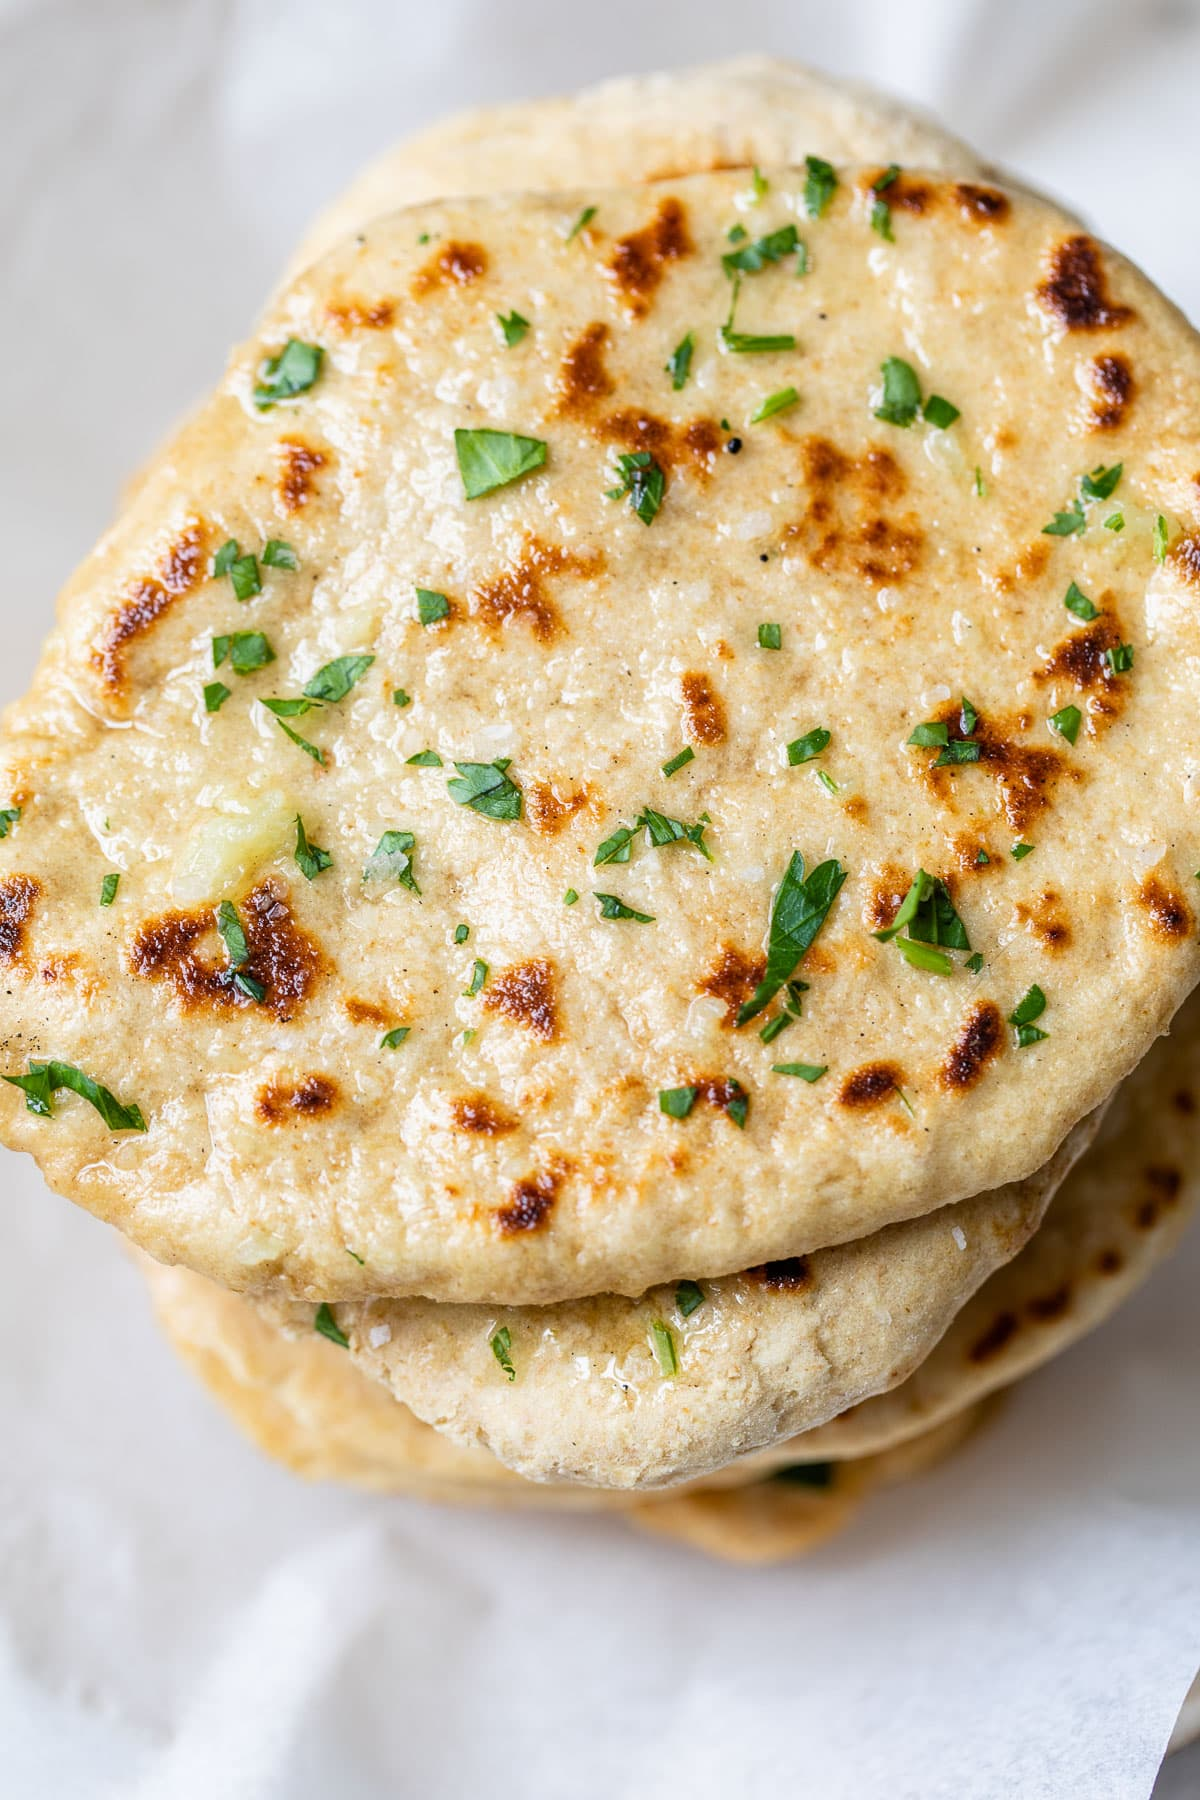 A stack of homemade naan